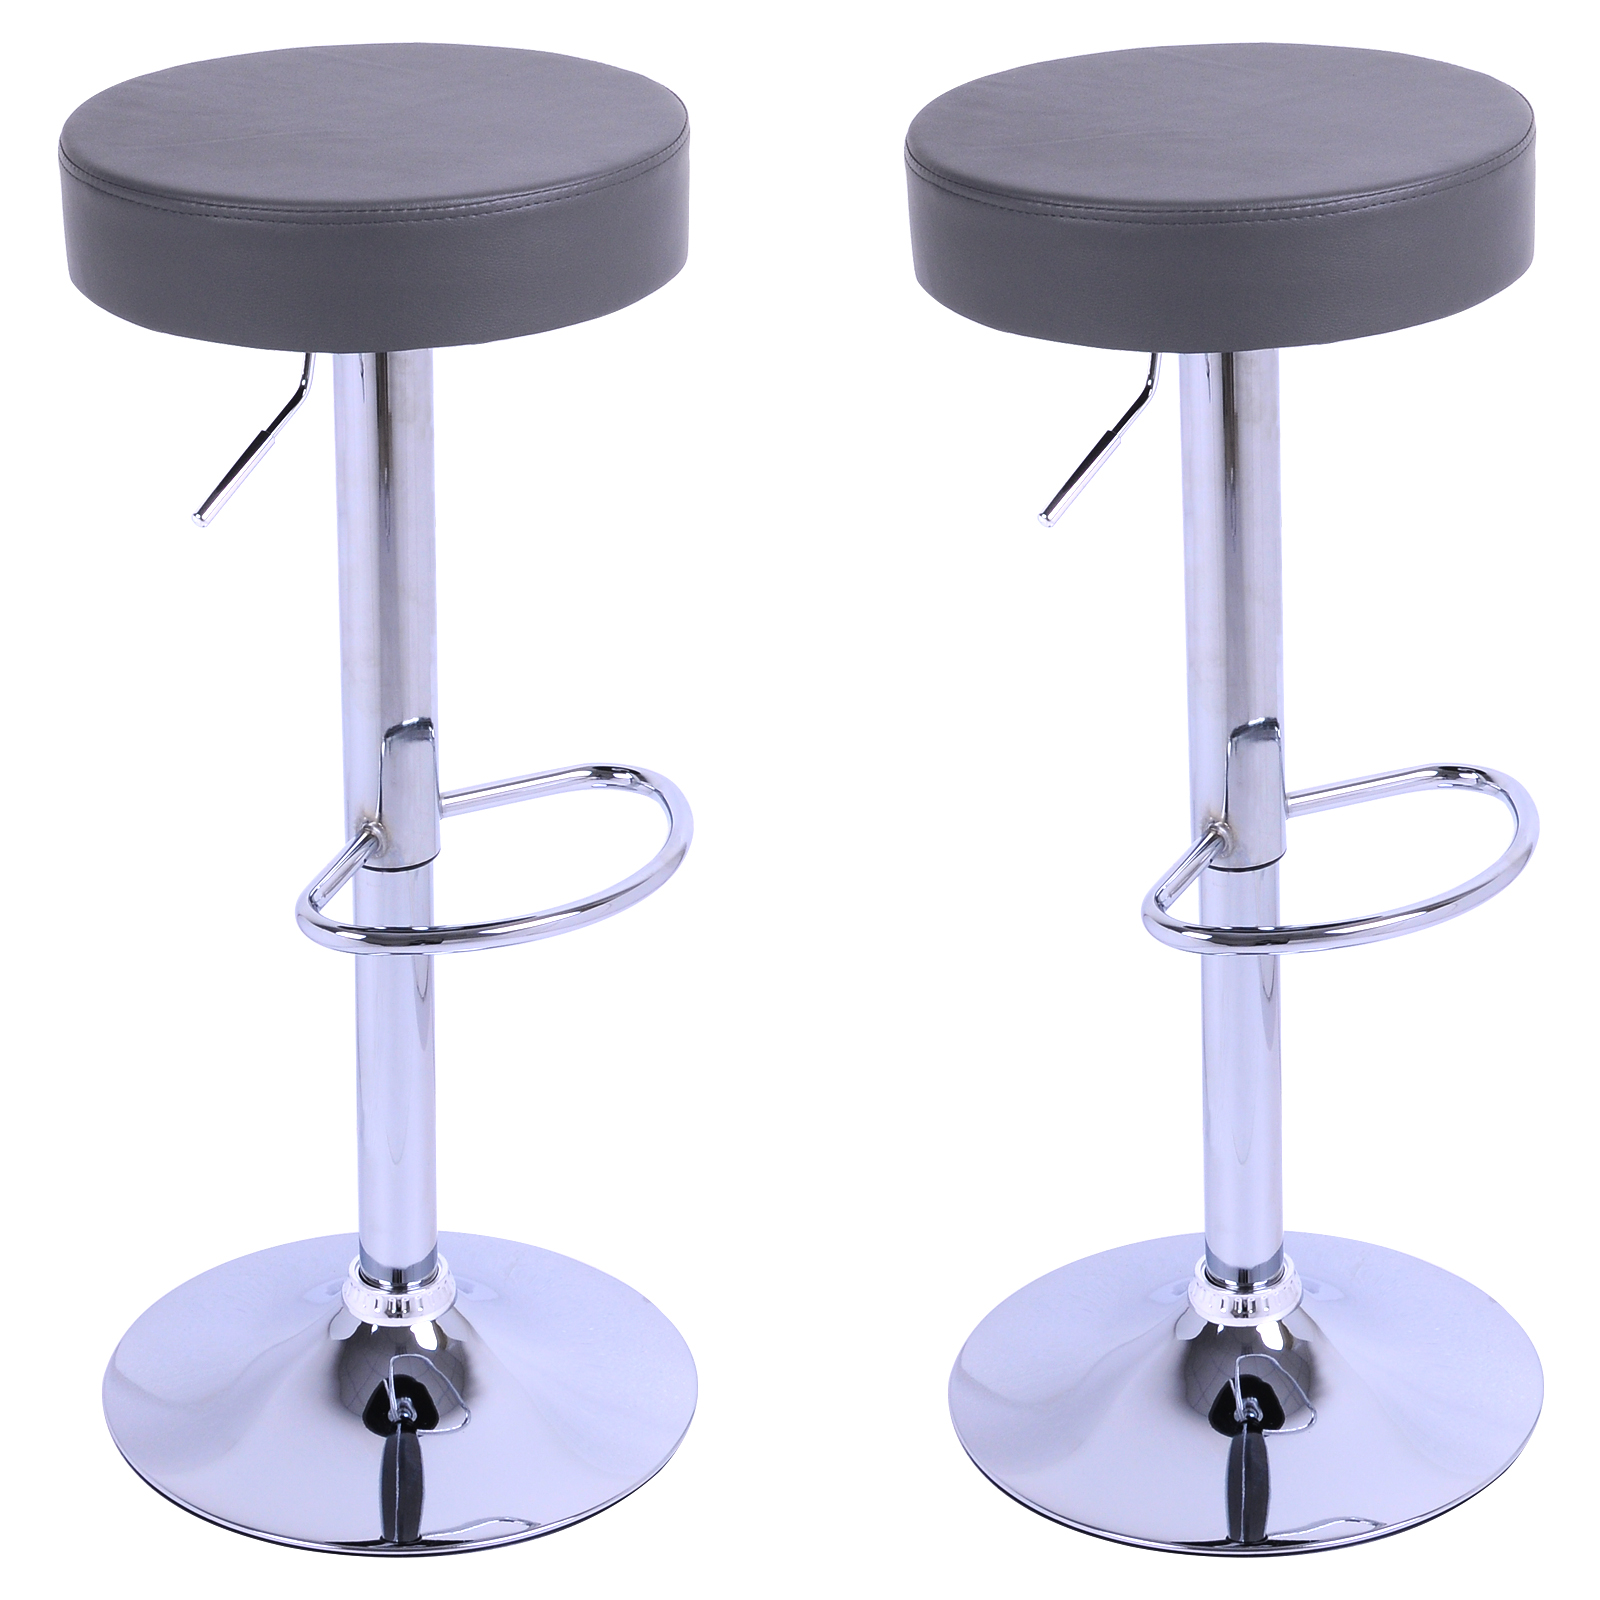 1 2 tabouret de bar en cuir synth tique chaise cuisine en plastique gris f013 ebay. Black Bedroom Furniture Sets. Home Design Ideas